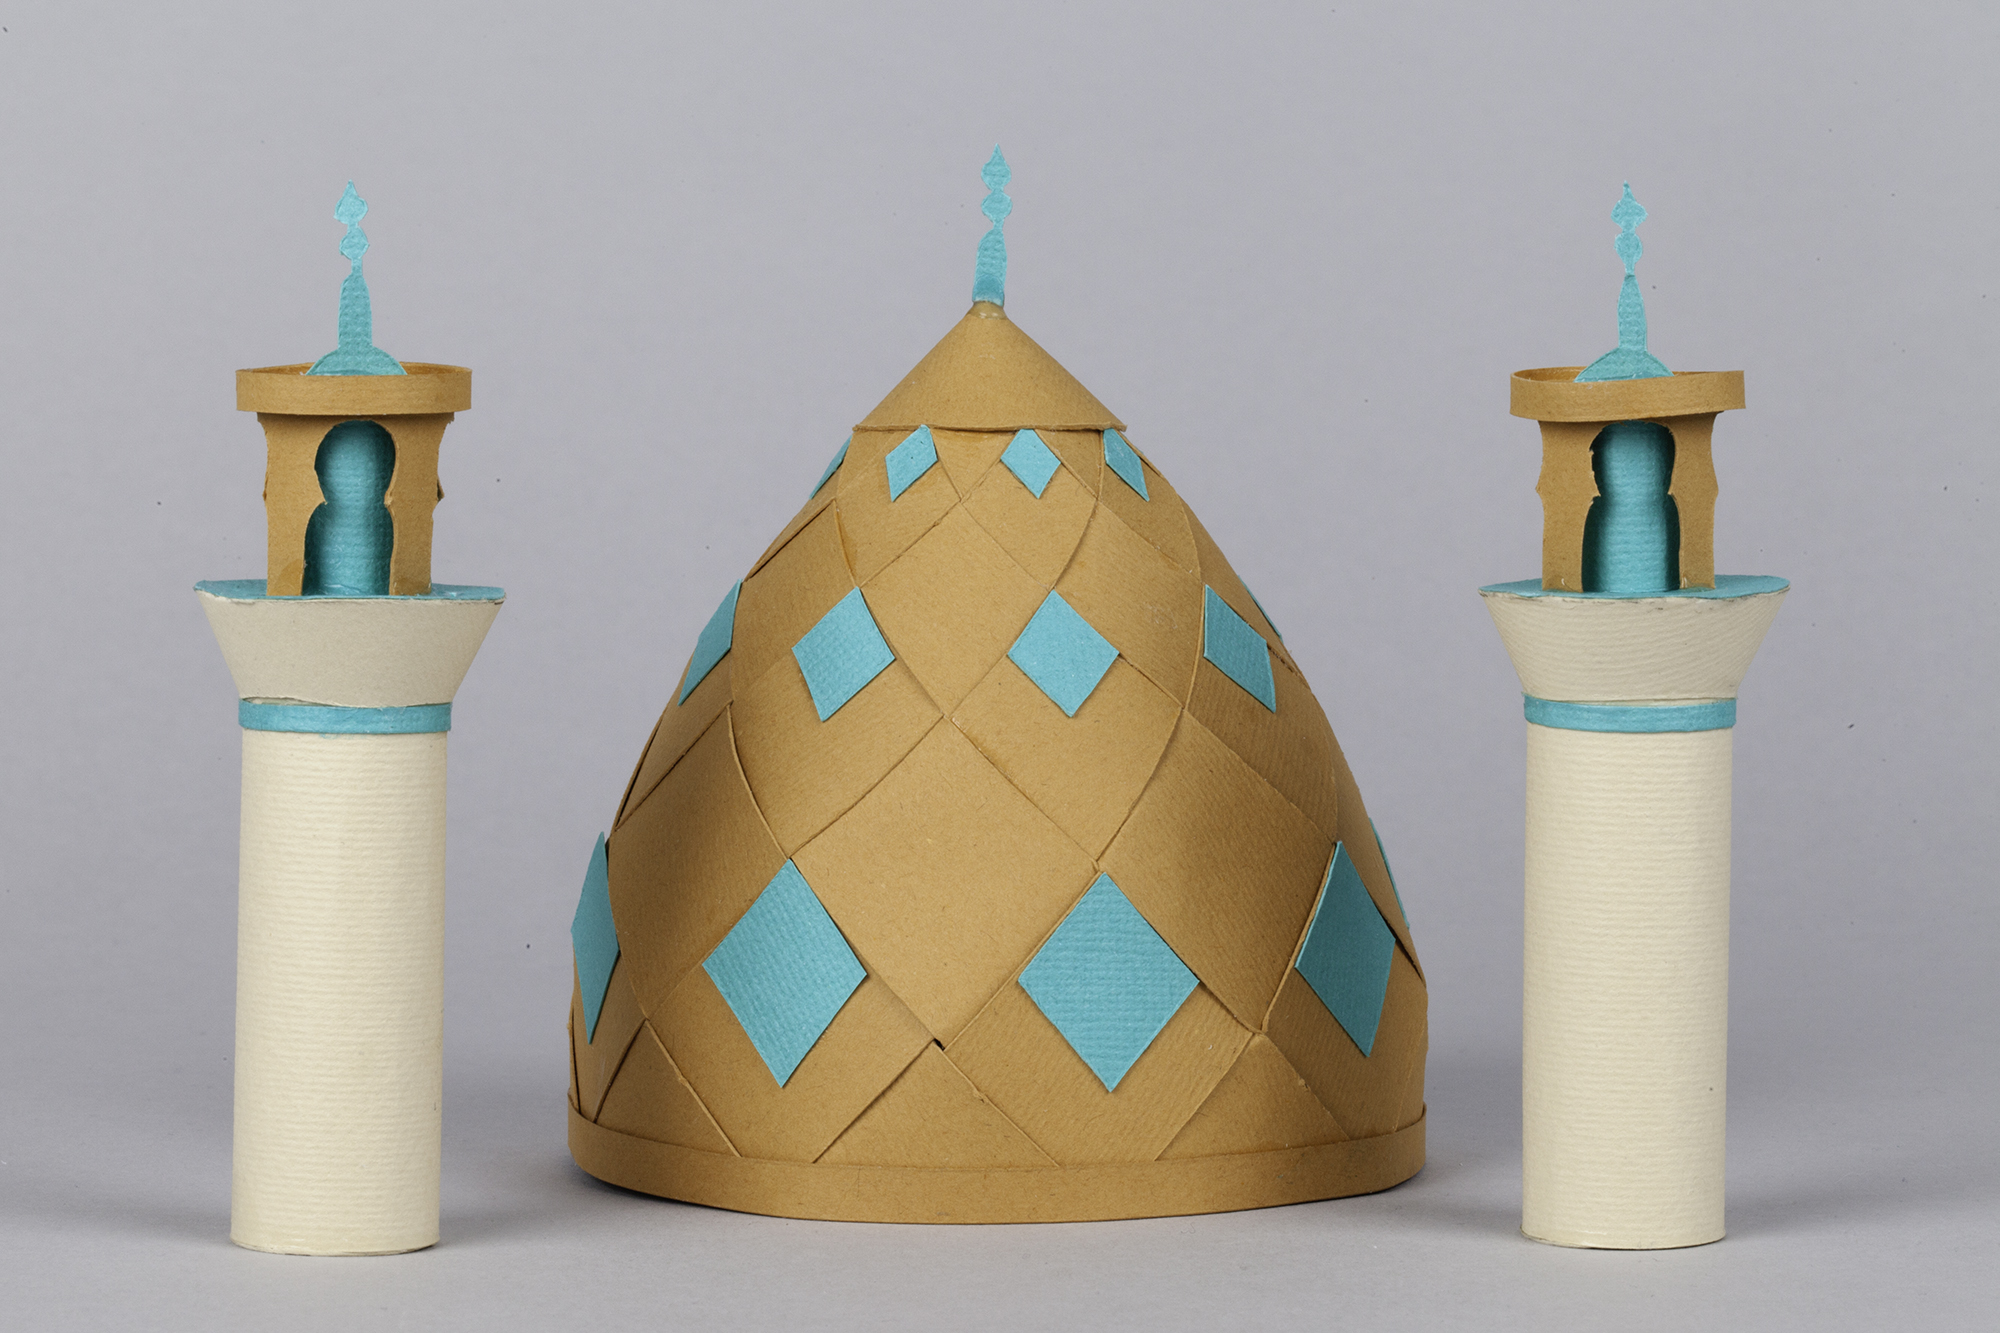 3D Letters for Silk Road Film Festival Crafted From Paper - Arab Dome